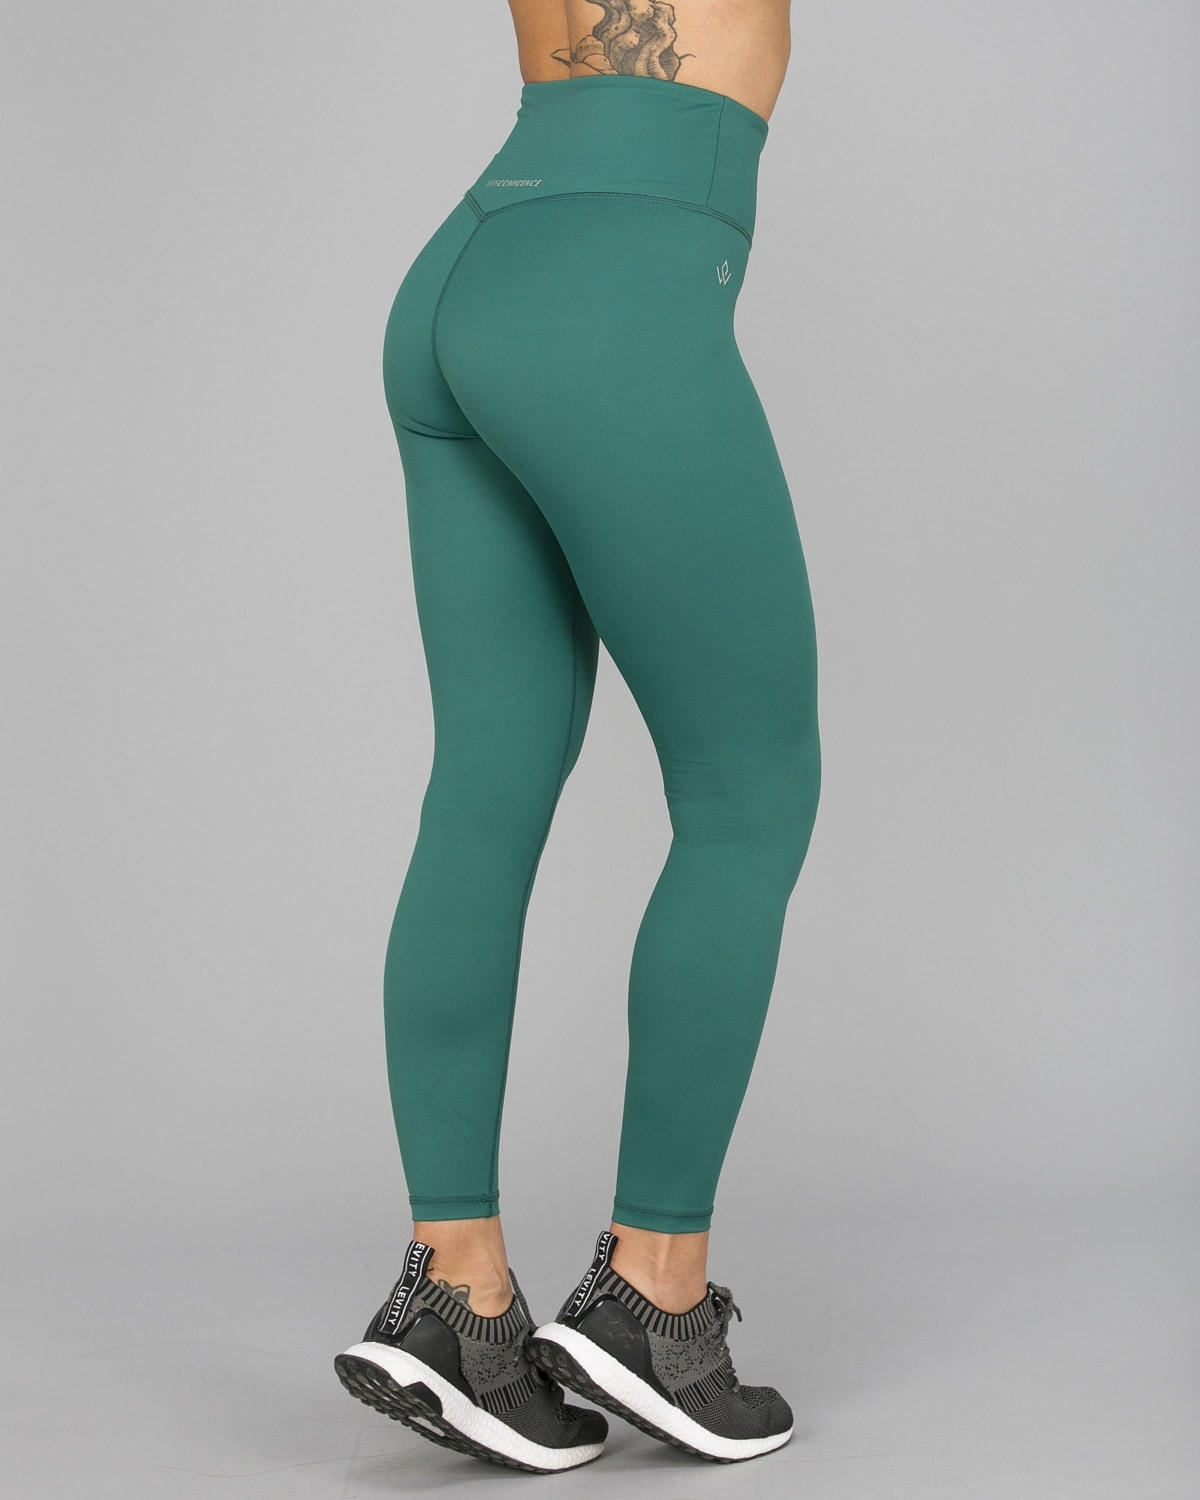 Workout Empire – With Confidence Shape Leggings – Emerald Green8